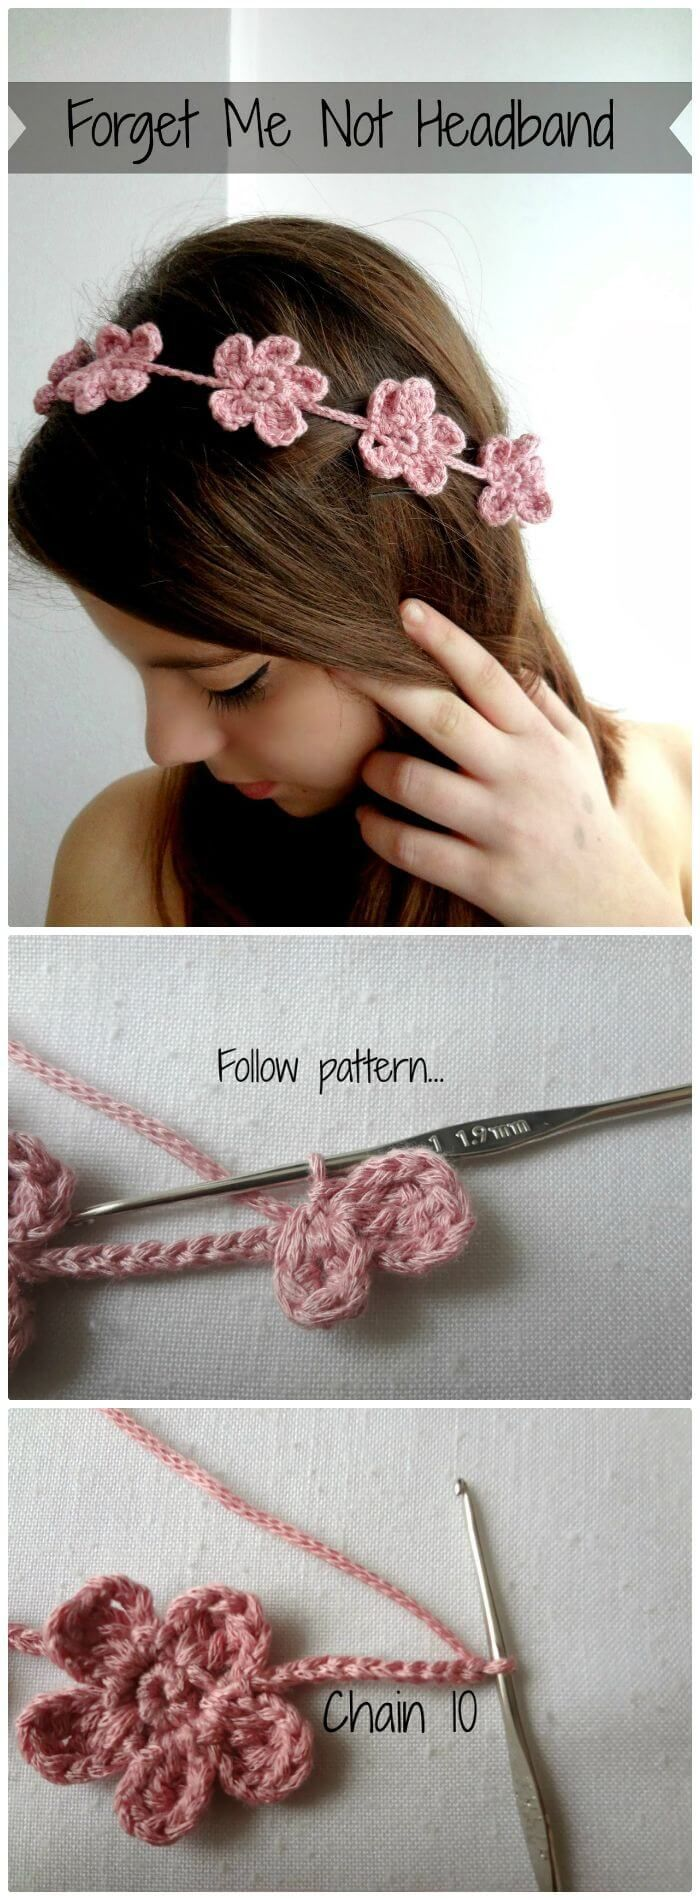 46 Free Crochet Headband Patterns to Try This Weekend | diadema d ...